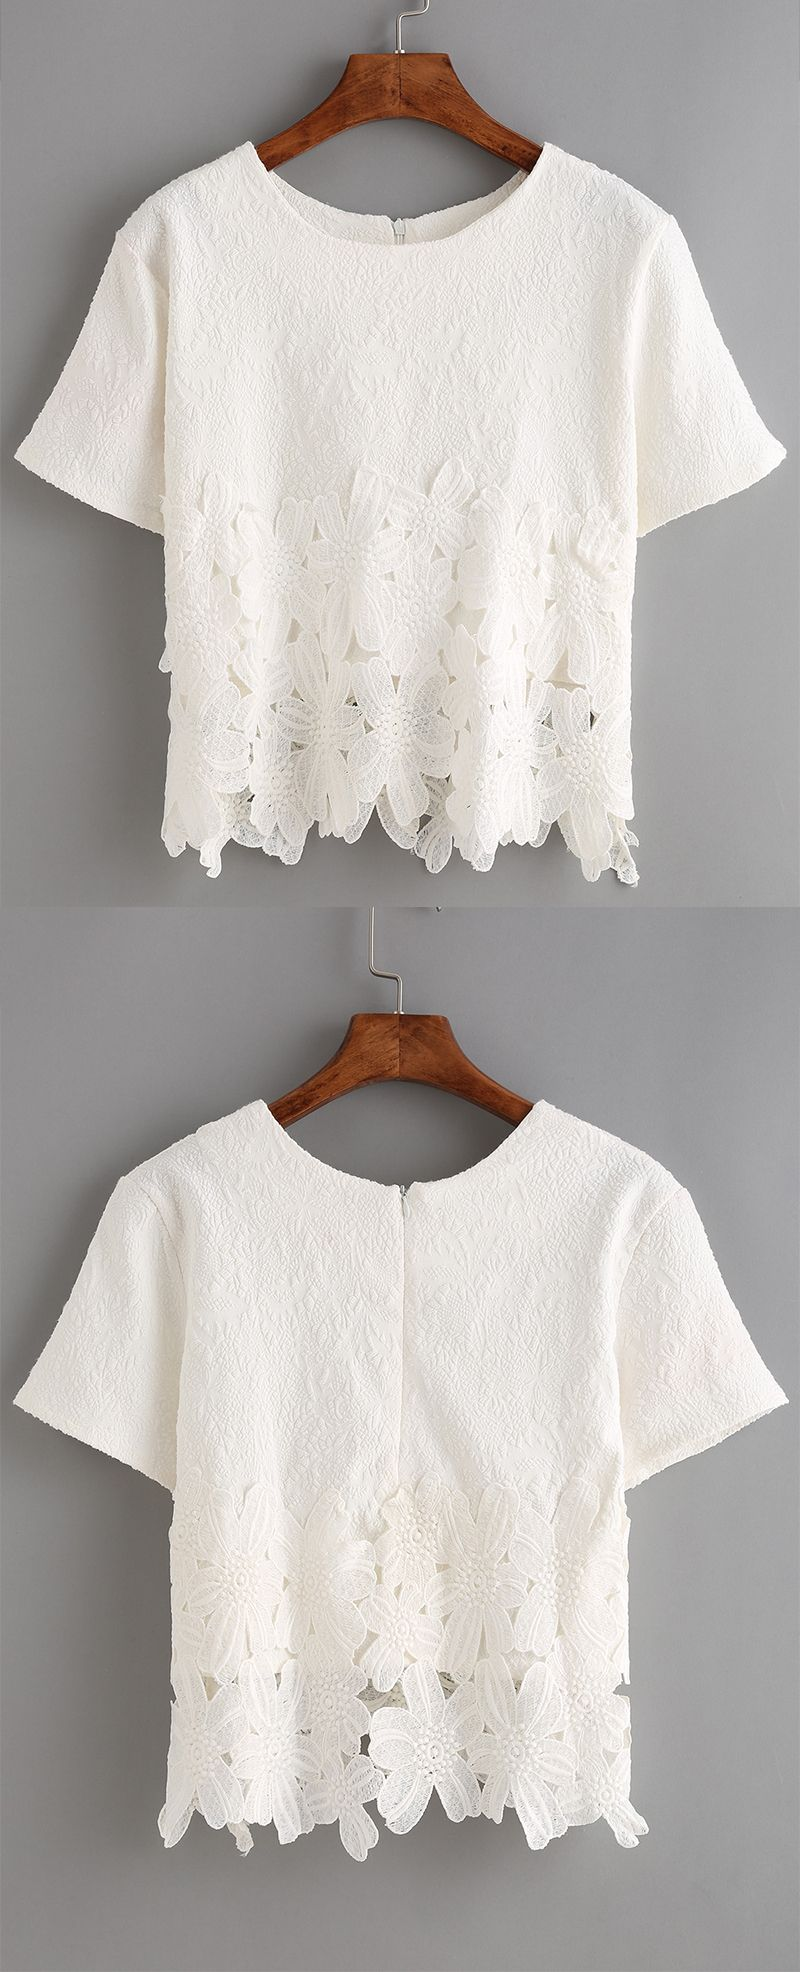 Absolutely Love The Delicate Lace Insert Jacquard On This Soft T